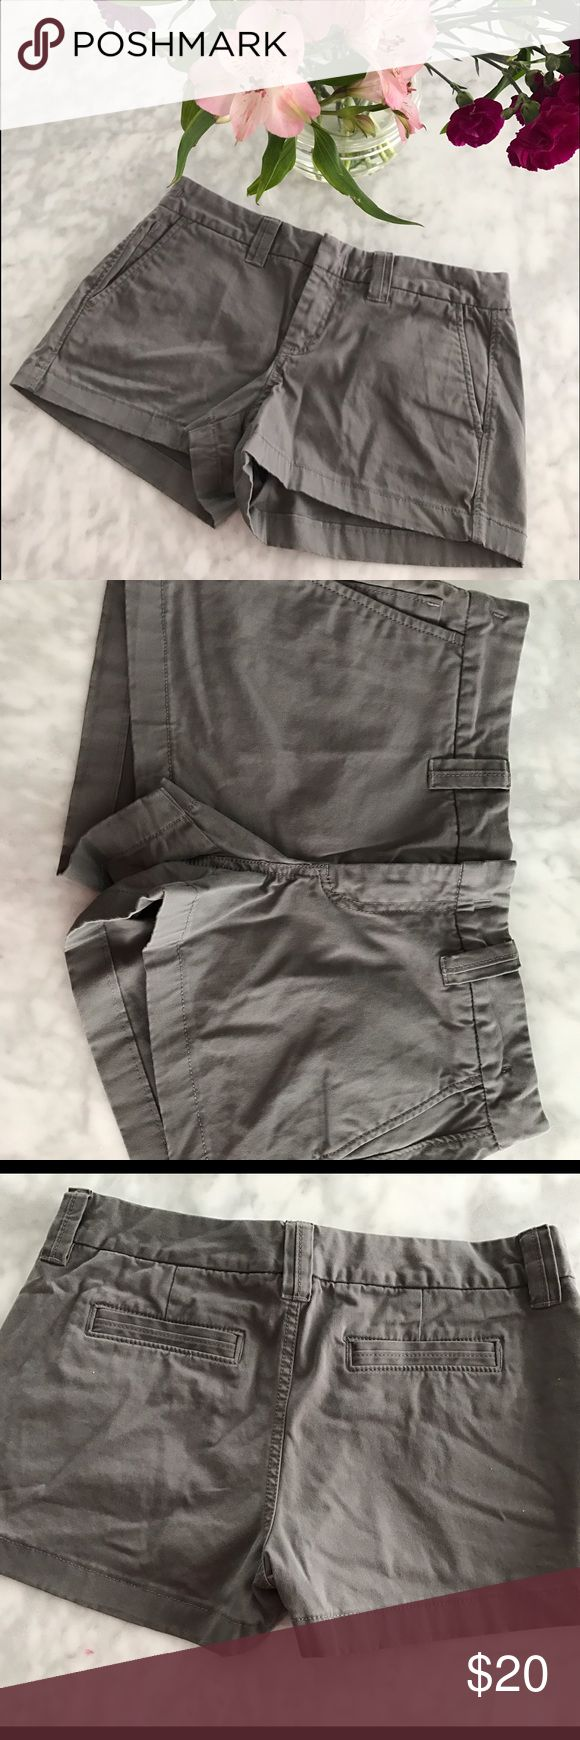 "Banana Republic Weekend Shorts Grey 6 Classic Prep Classic pair of gray Banana Republic twill shorts, size 6, excellent condition! Measures 15.5"" across laying flat, 3"" inseam. No holds, no 🅿️🅿️or♏️-thank you! 💕😘 Banana Republic Shorts"